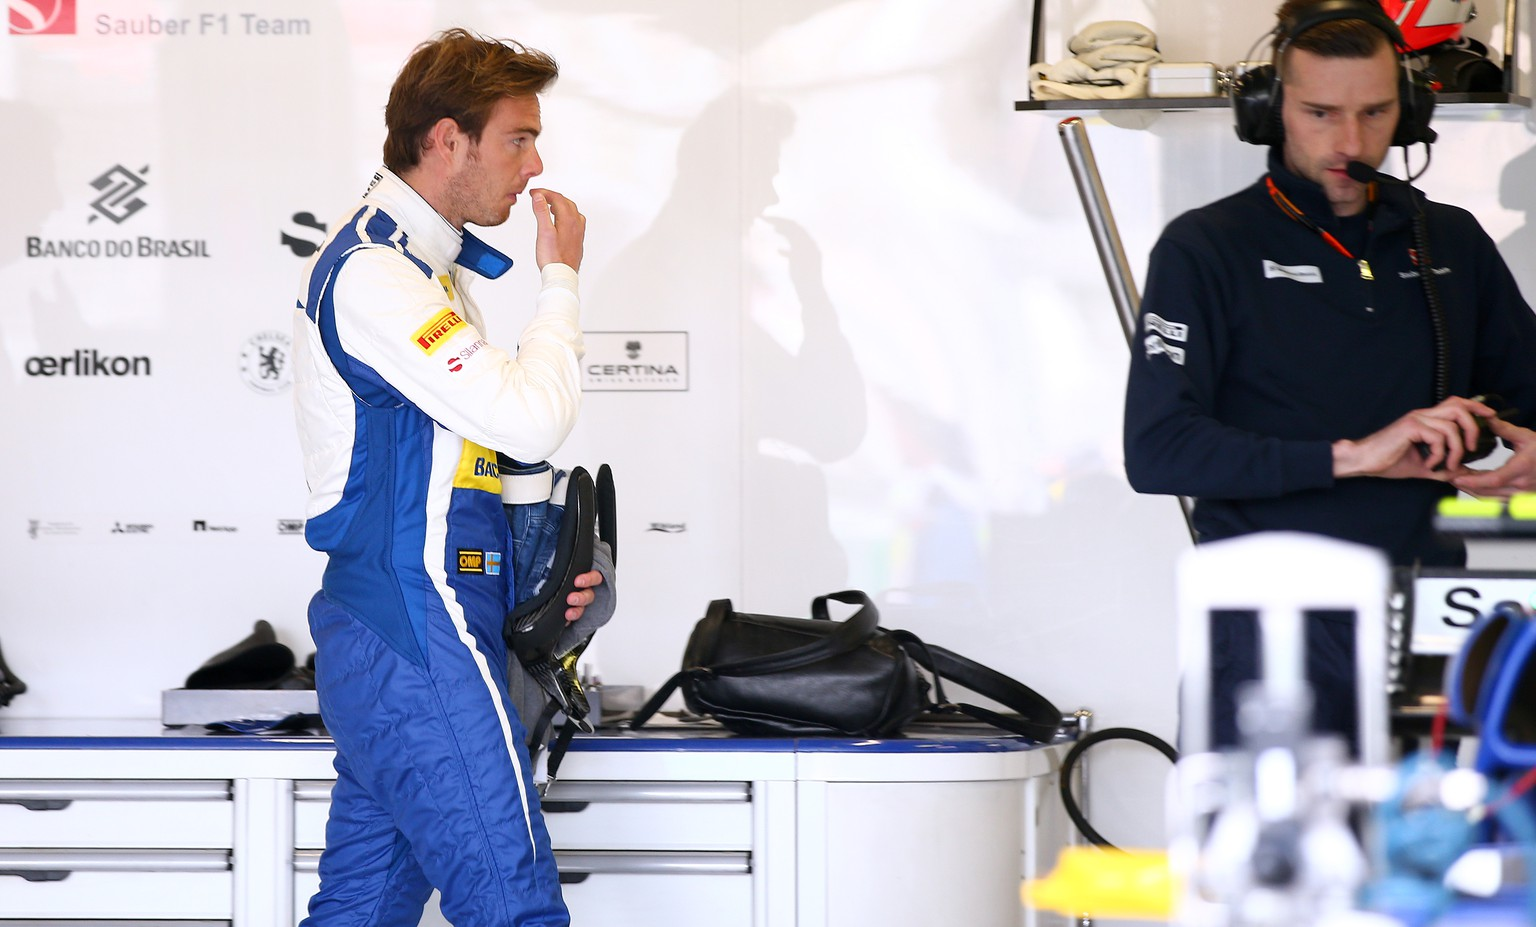 MELBOURNE, AUSTRALIA - MARCH 13:  Giedo van der Garde of Netherlands and Sauber F1 walks through the team garage during practice for the Australian Formula One Grand Prix at Albert Park on March 13, 2015 in Melbourne, Australia.  (Photo by Mark Thompson/Getty Images)